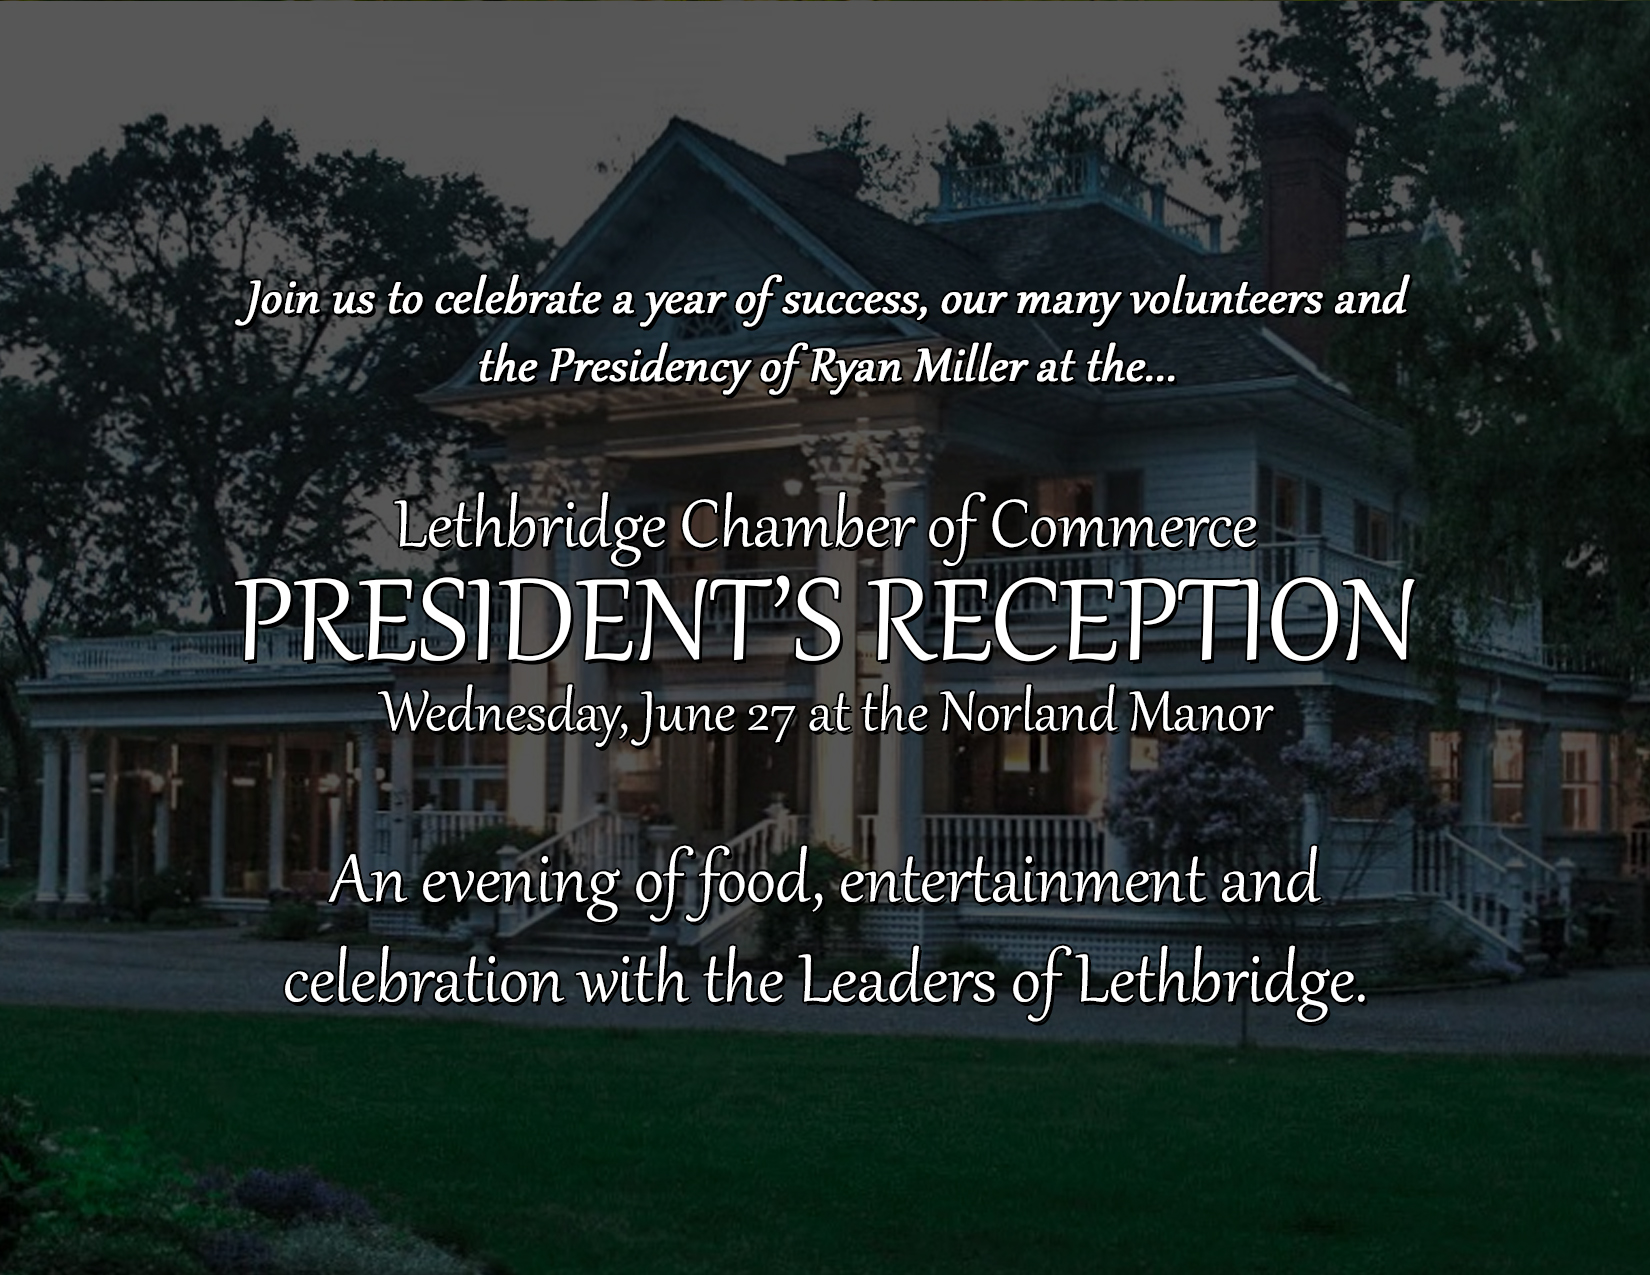 President's Reception